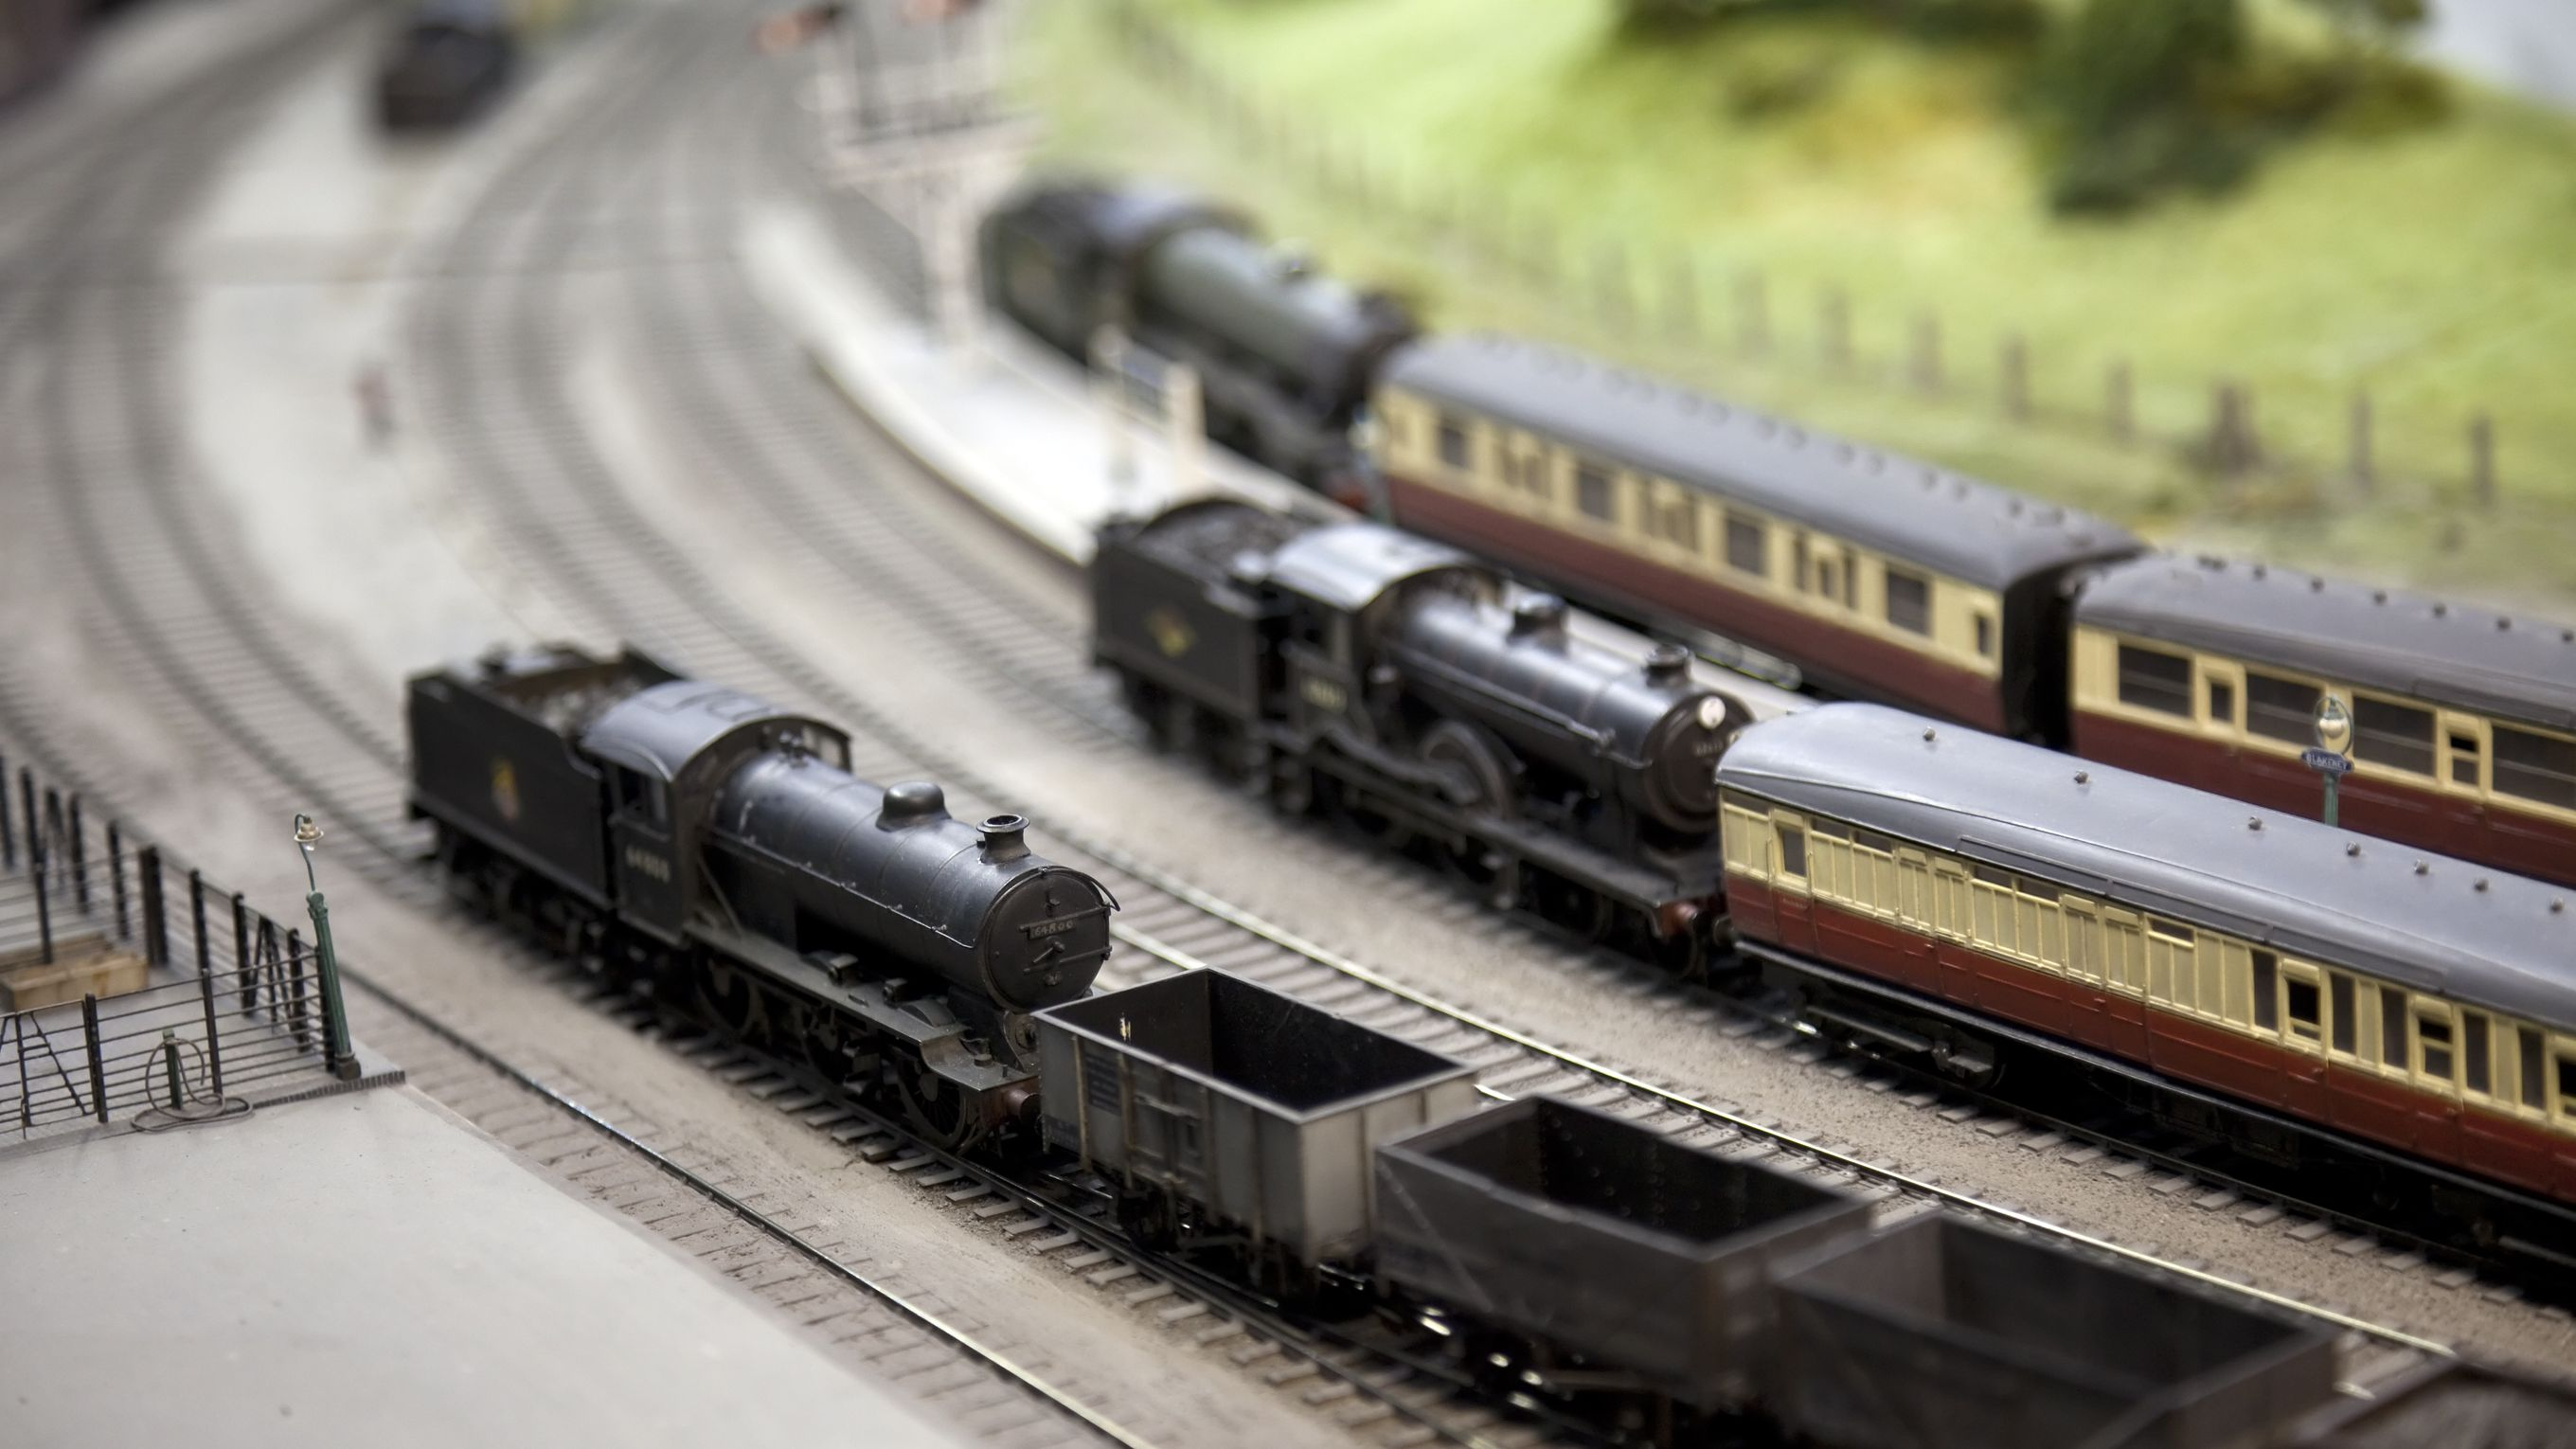 Bus Wiring for Model Railroads | N Scale Track Wiring |  | The Spruce Crafts